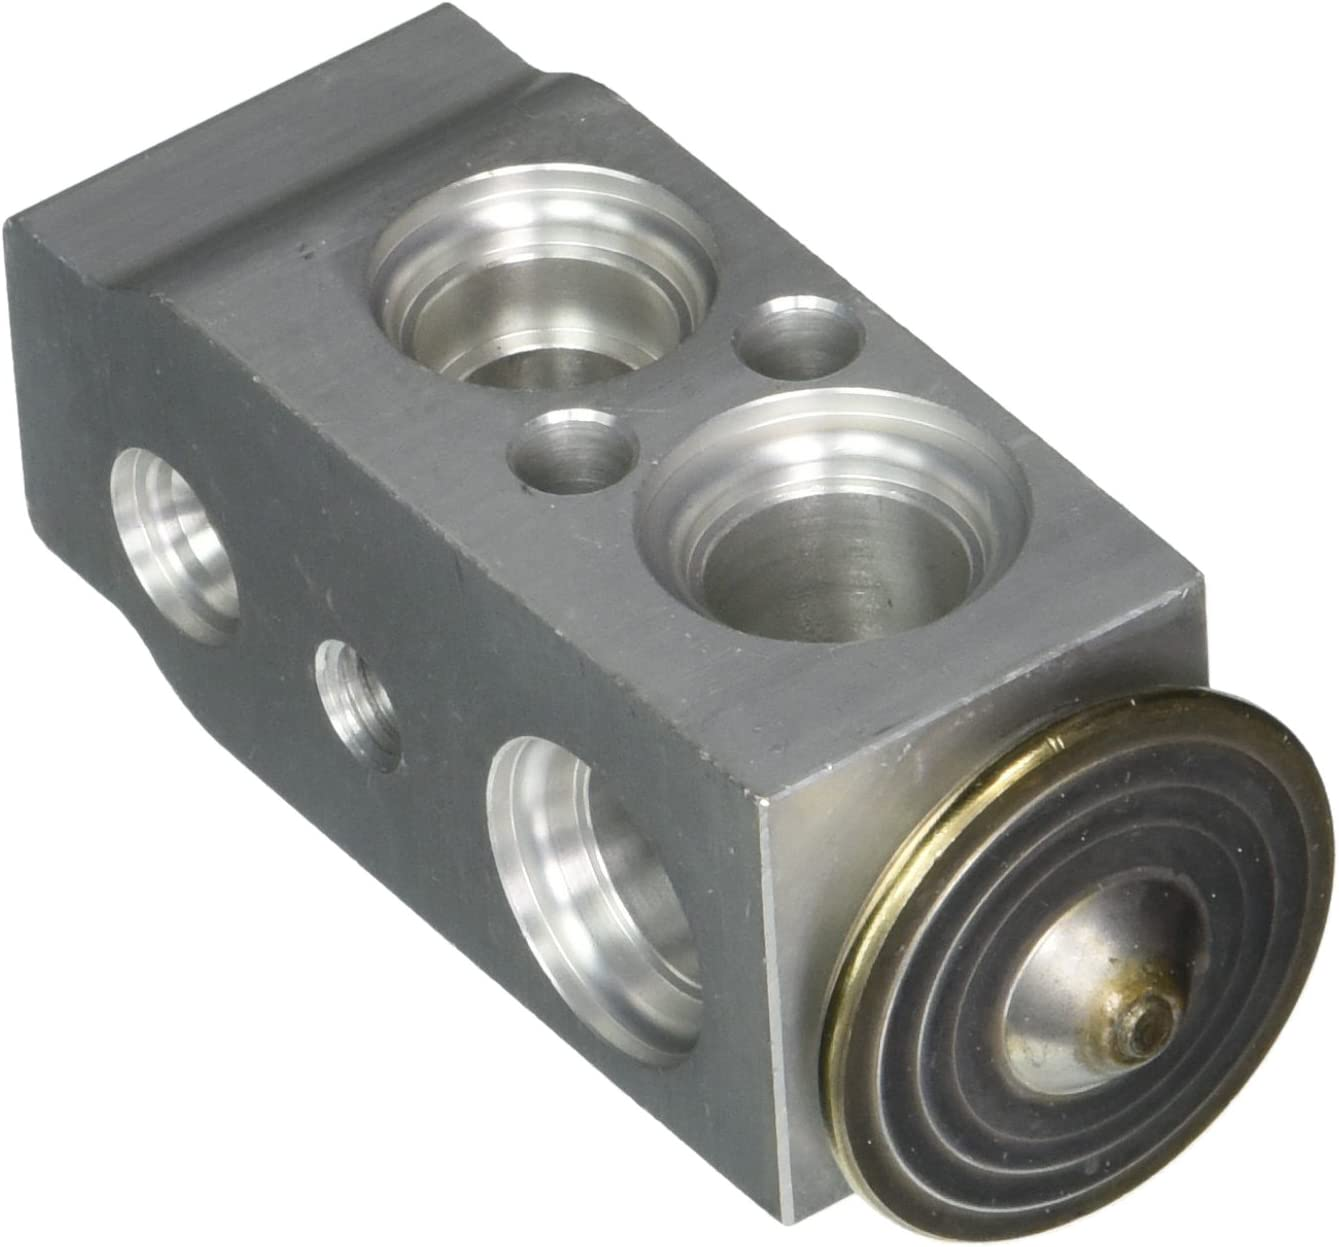 Four All stores are sold Seasons Discount mail order 39033 Valve Expansion